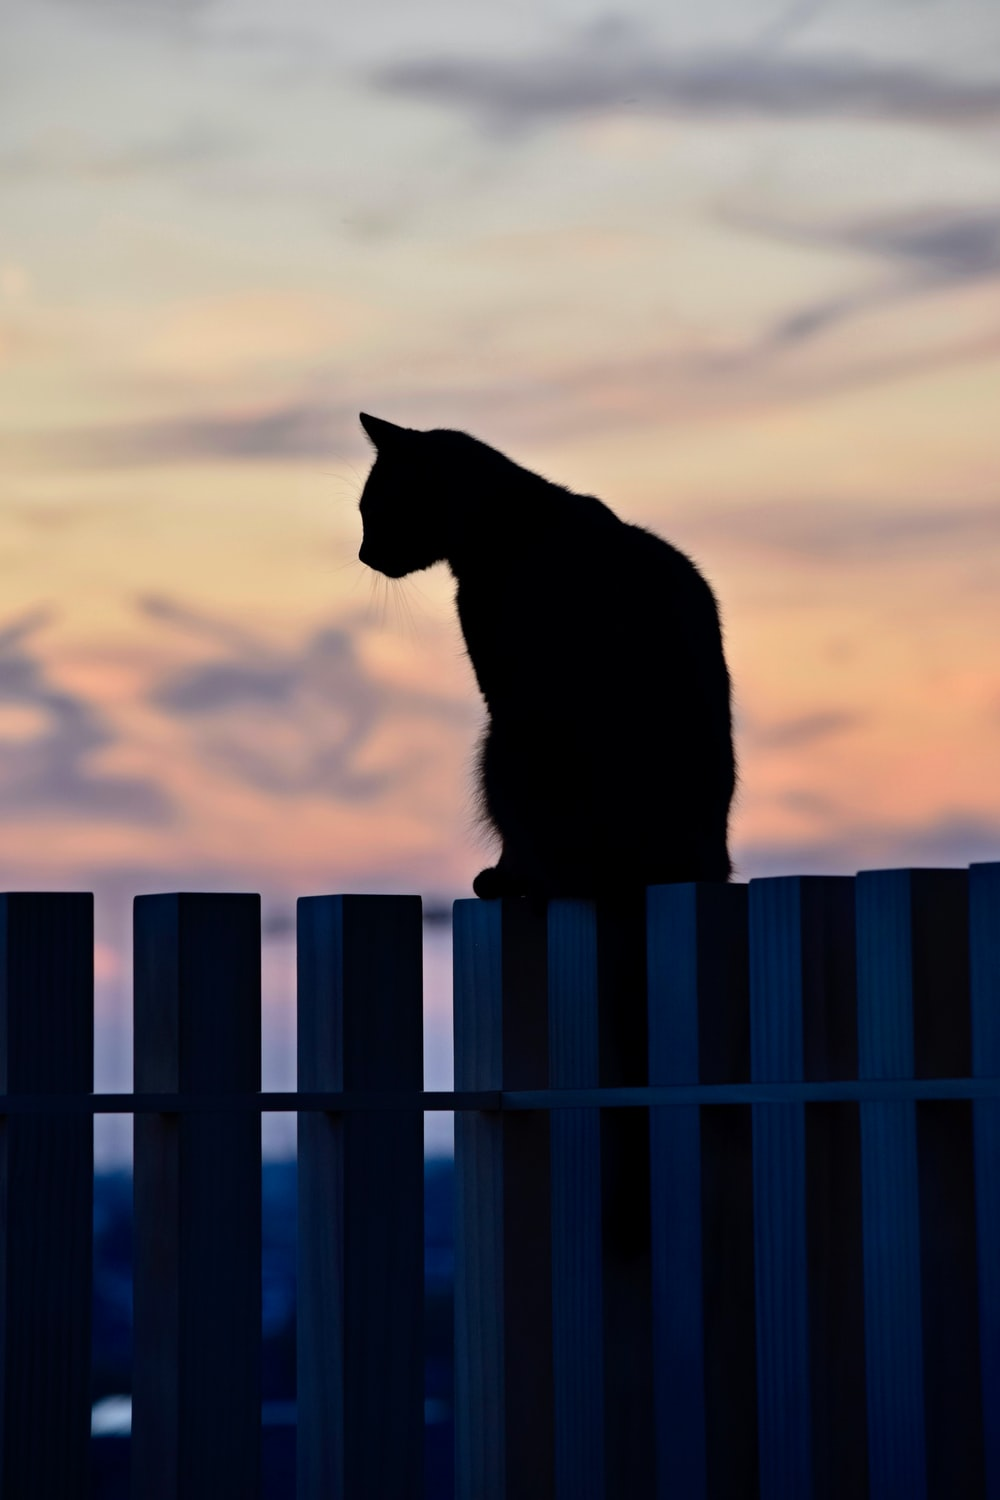 silhouette of cat on wooden fence